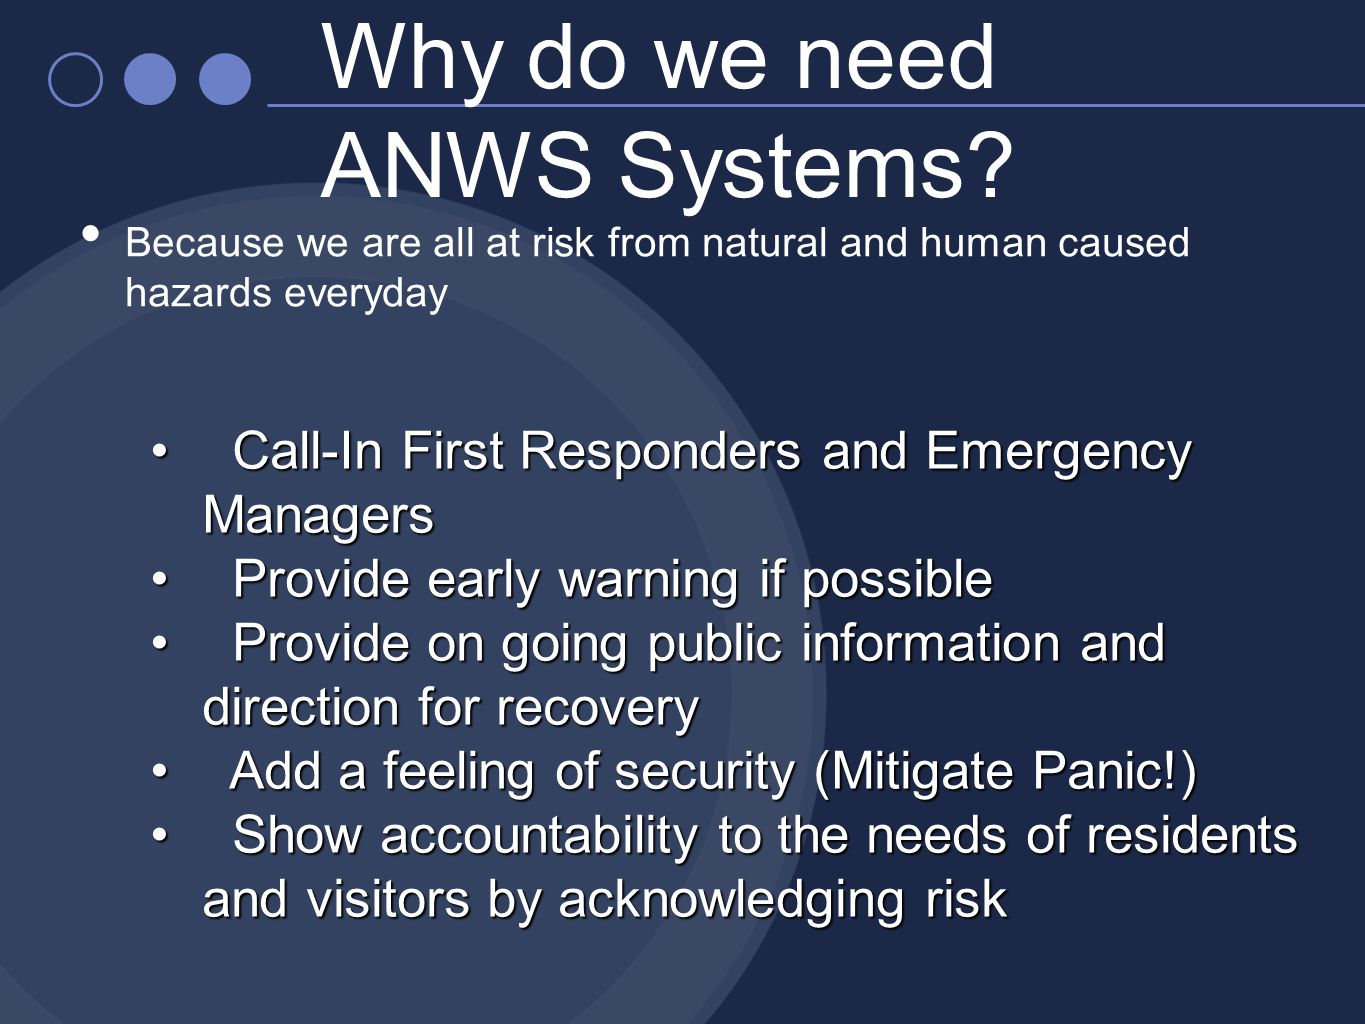 Why do we need ANWS Systems? Because we are all at risk from natural and human caused hazards everyday Call-In First Responders and Emergency Managers